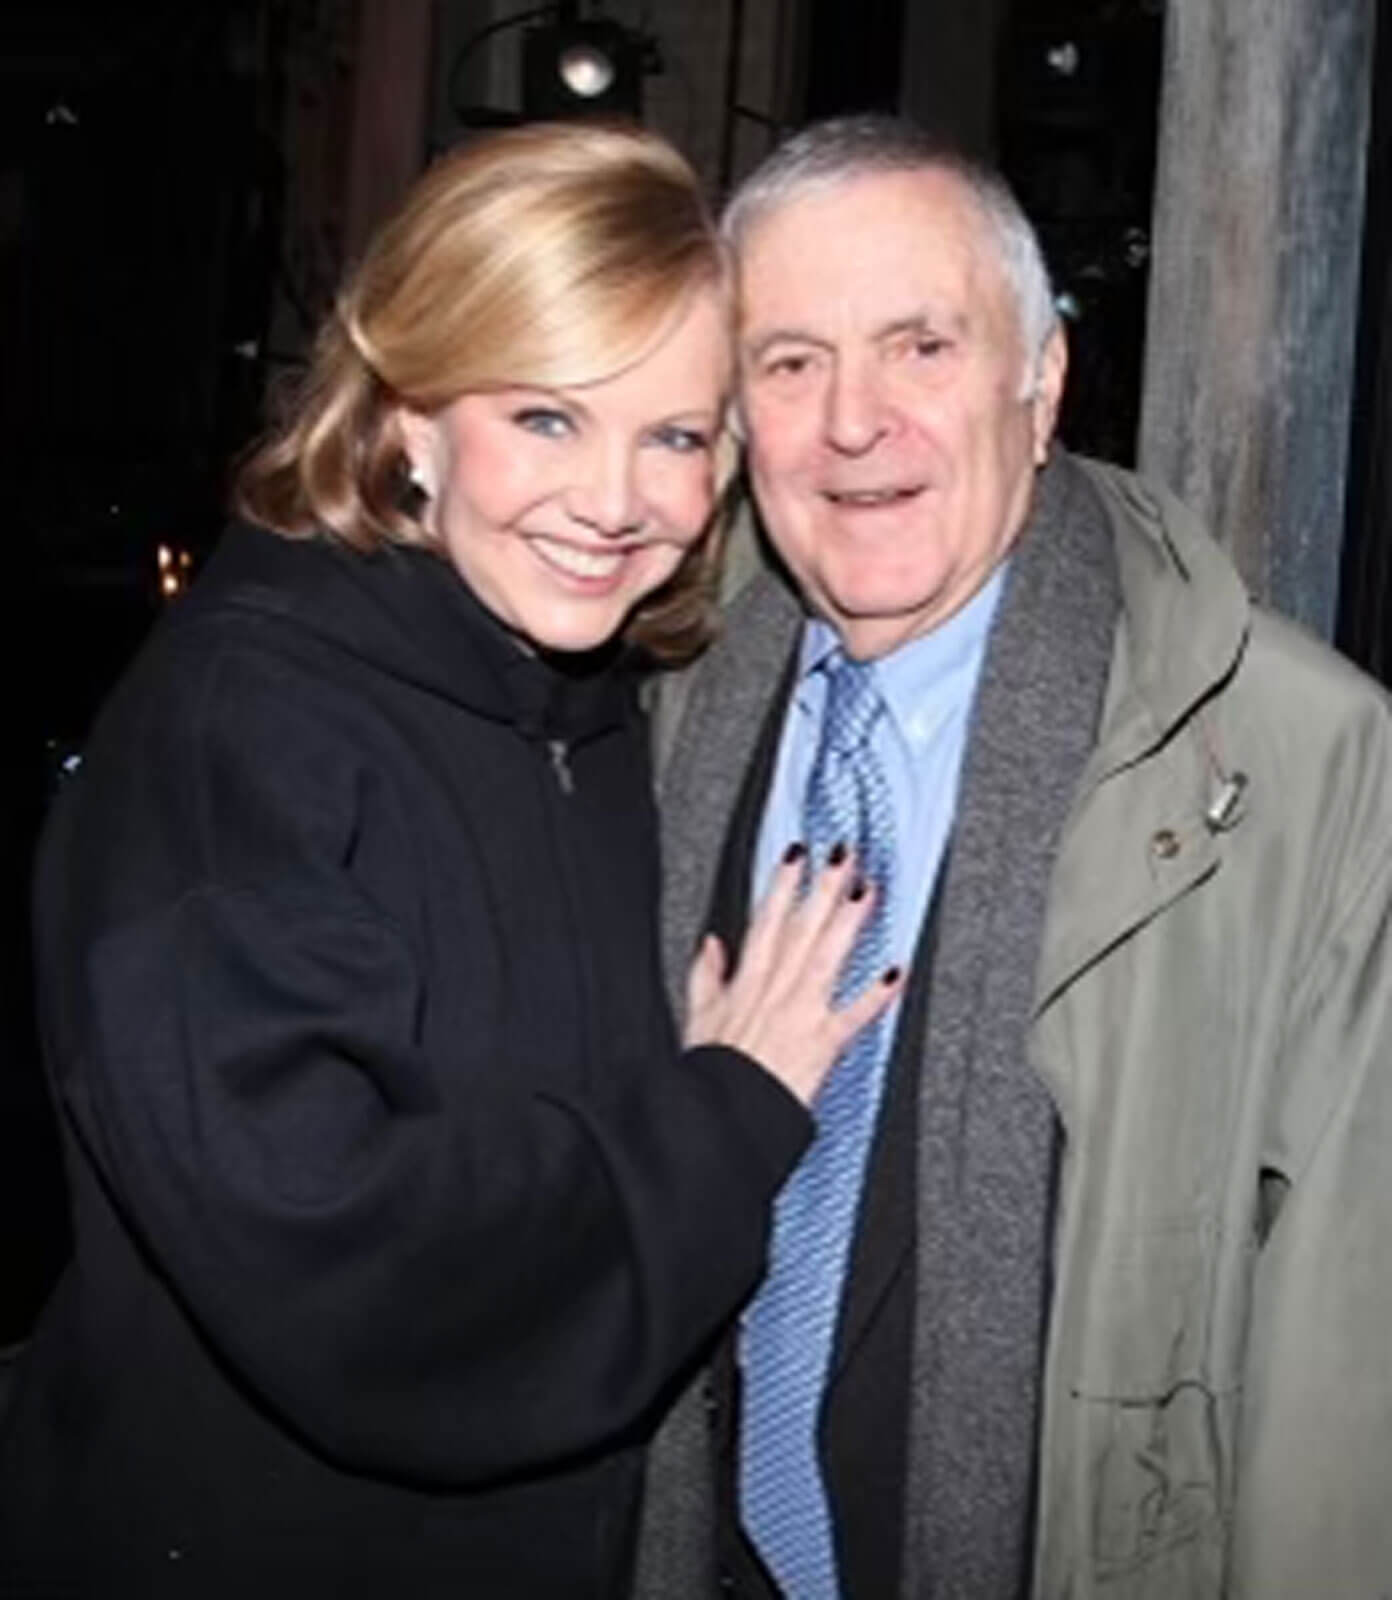 Susan Stroman with long-time collaborator, John Kander. Both are dressed in winter coats.